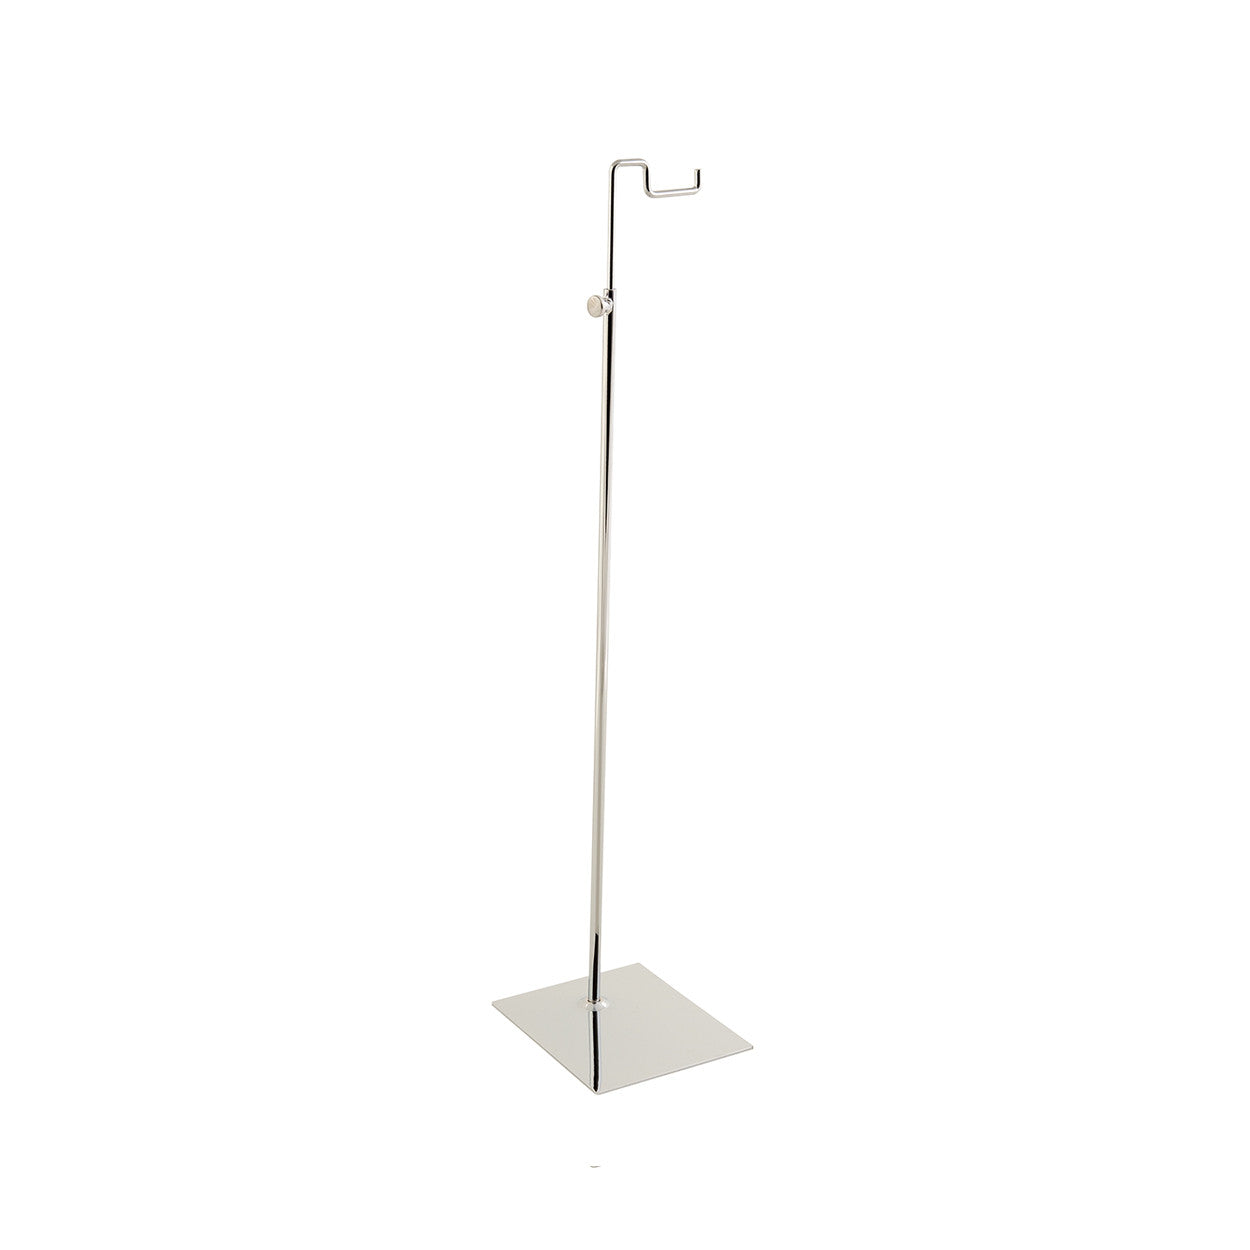 Budget Handbag Display Stand Large With Solid Base 150X120 Base,510-770Mm Adj H